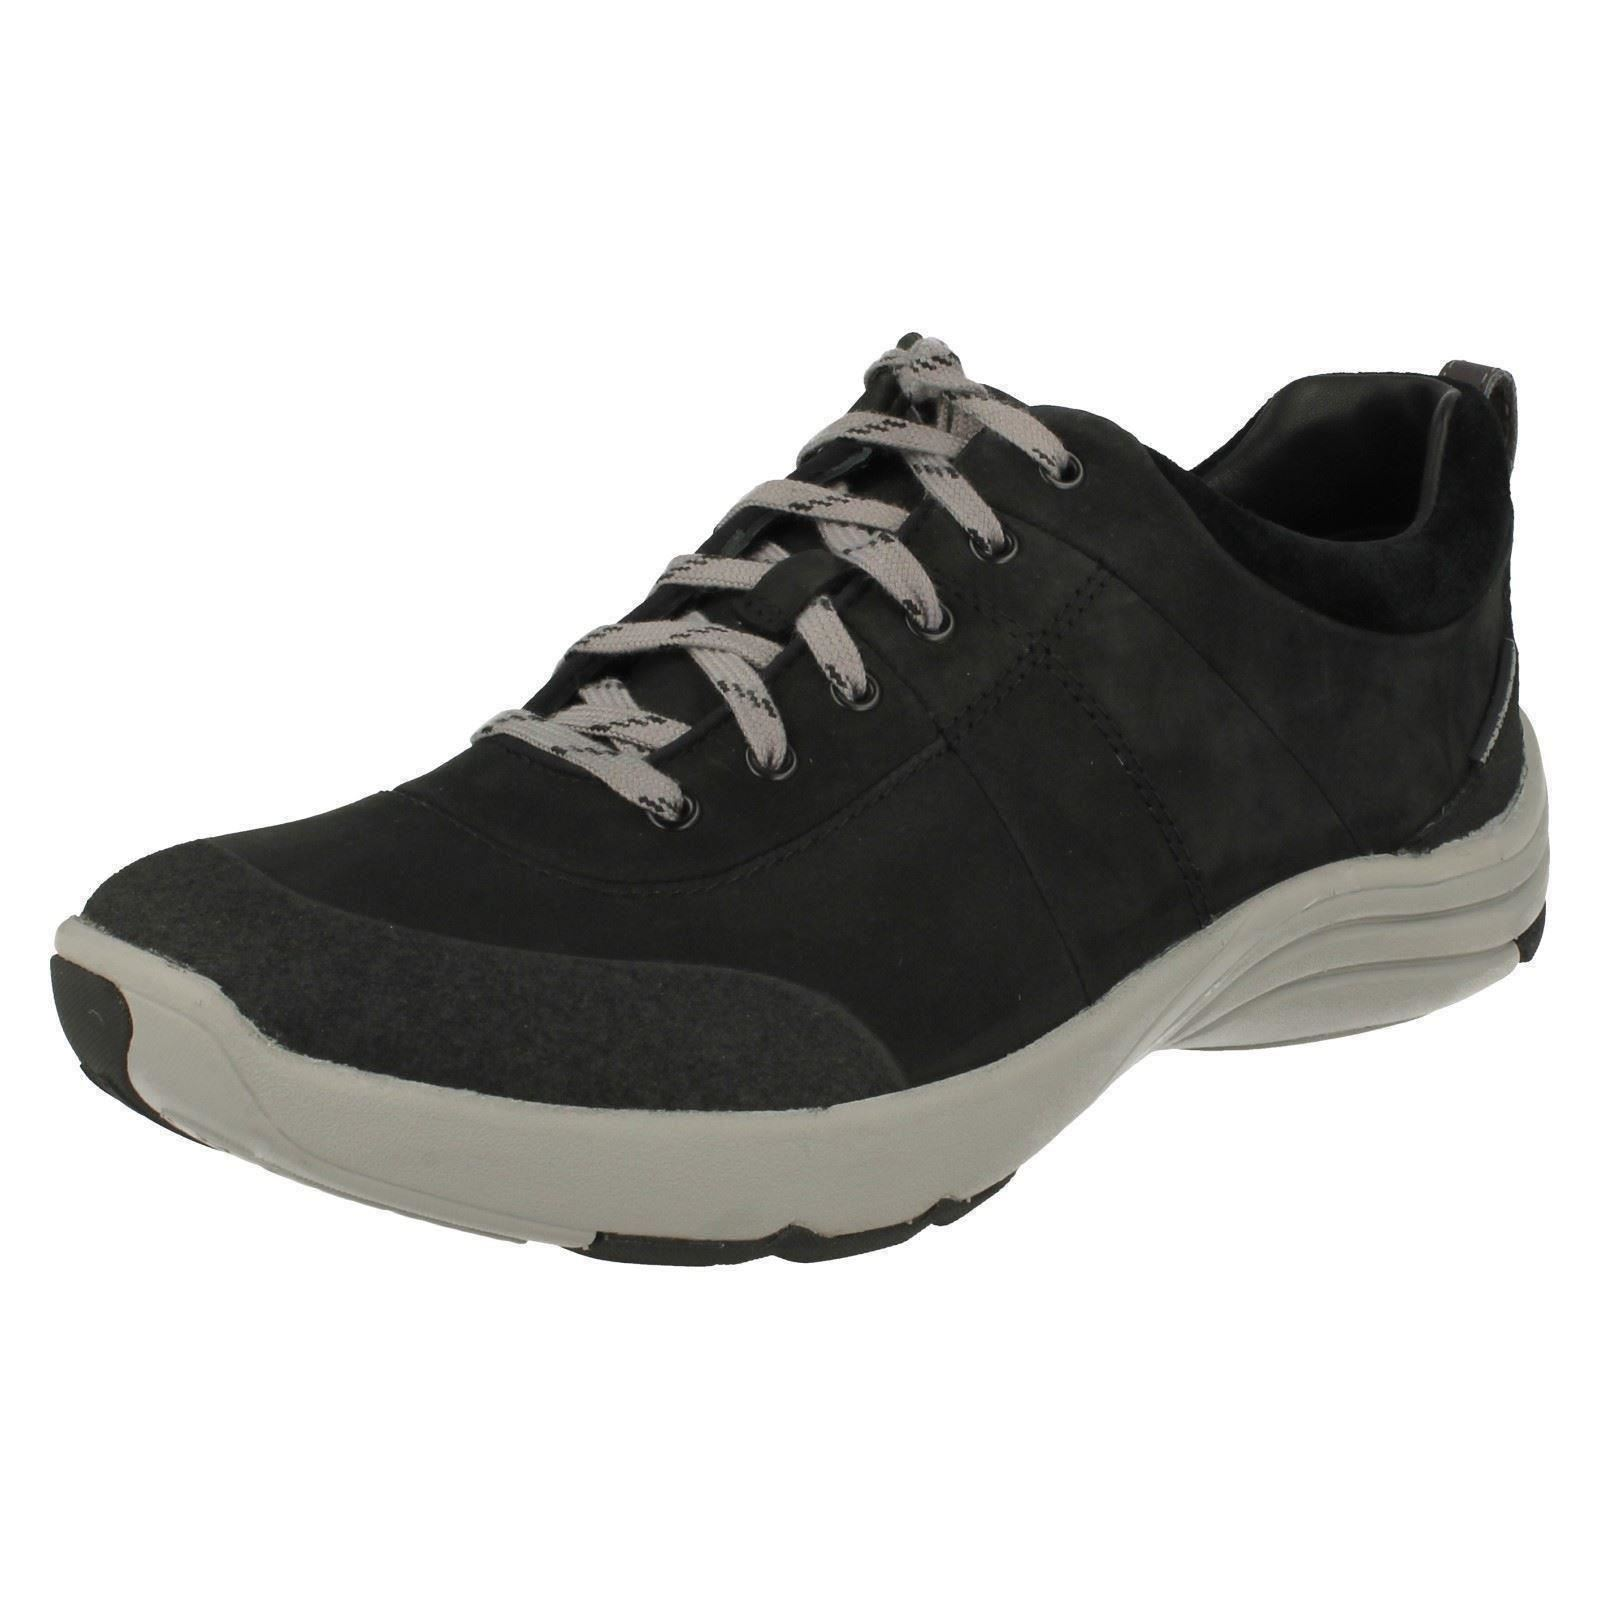 5085cffd0 Clarks Wave Andes - Black Nubuck Womens Trainers 3 UK